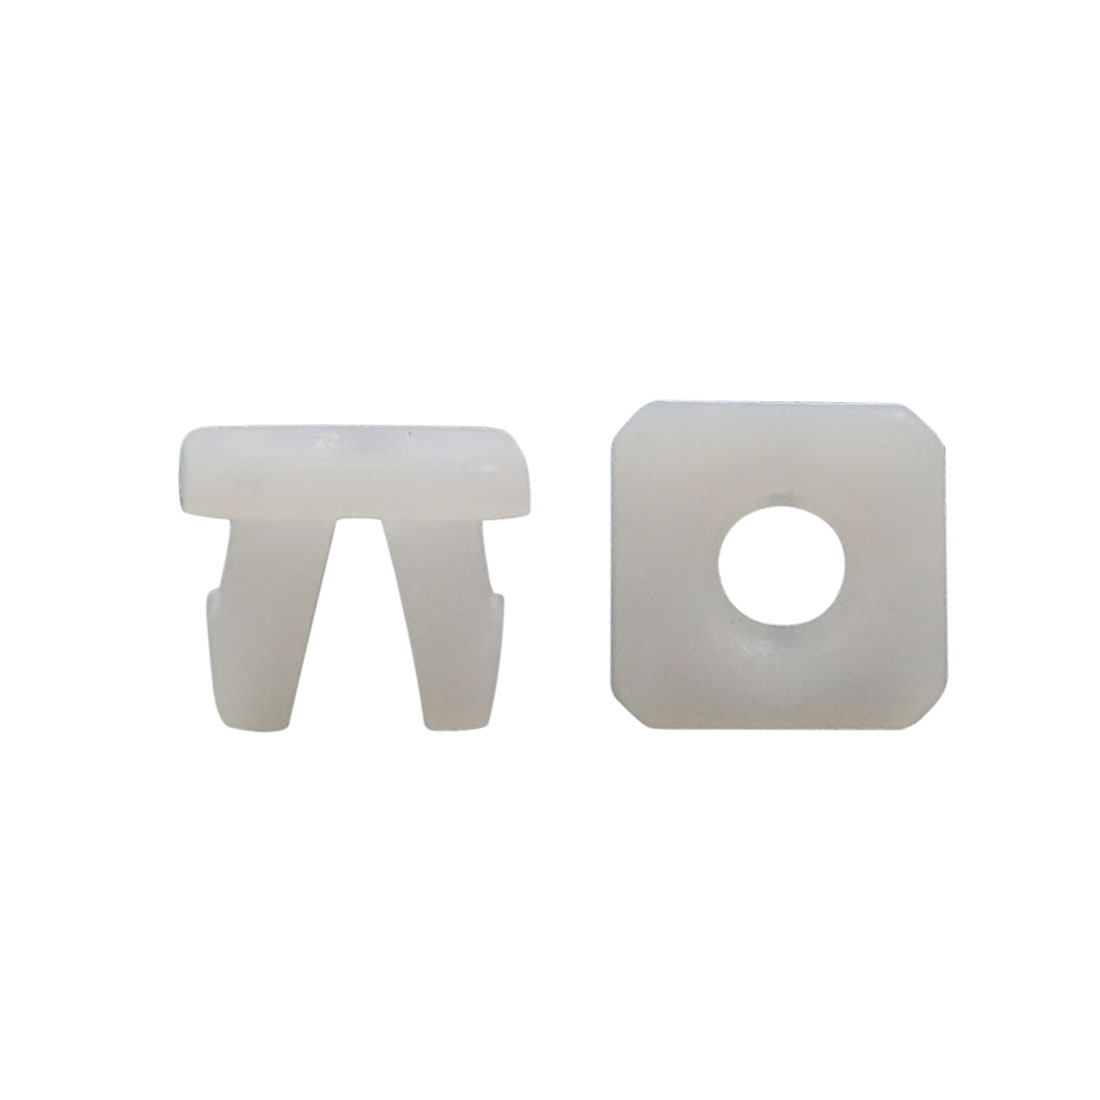 30Pcs White Square Plastic Rivets Fender Fastener Retainer Clips 10 x 7.5mm